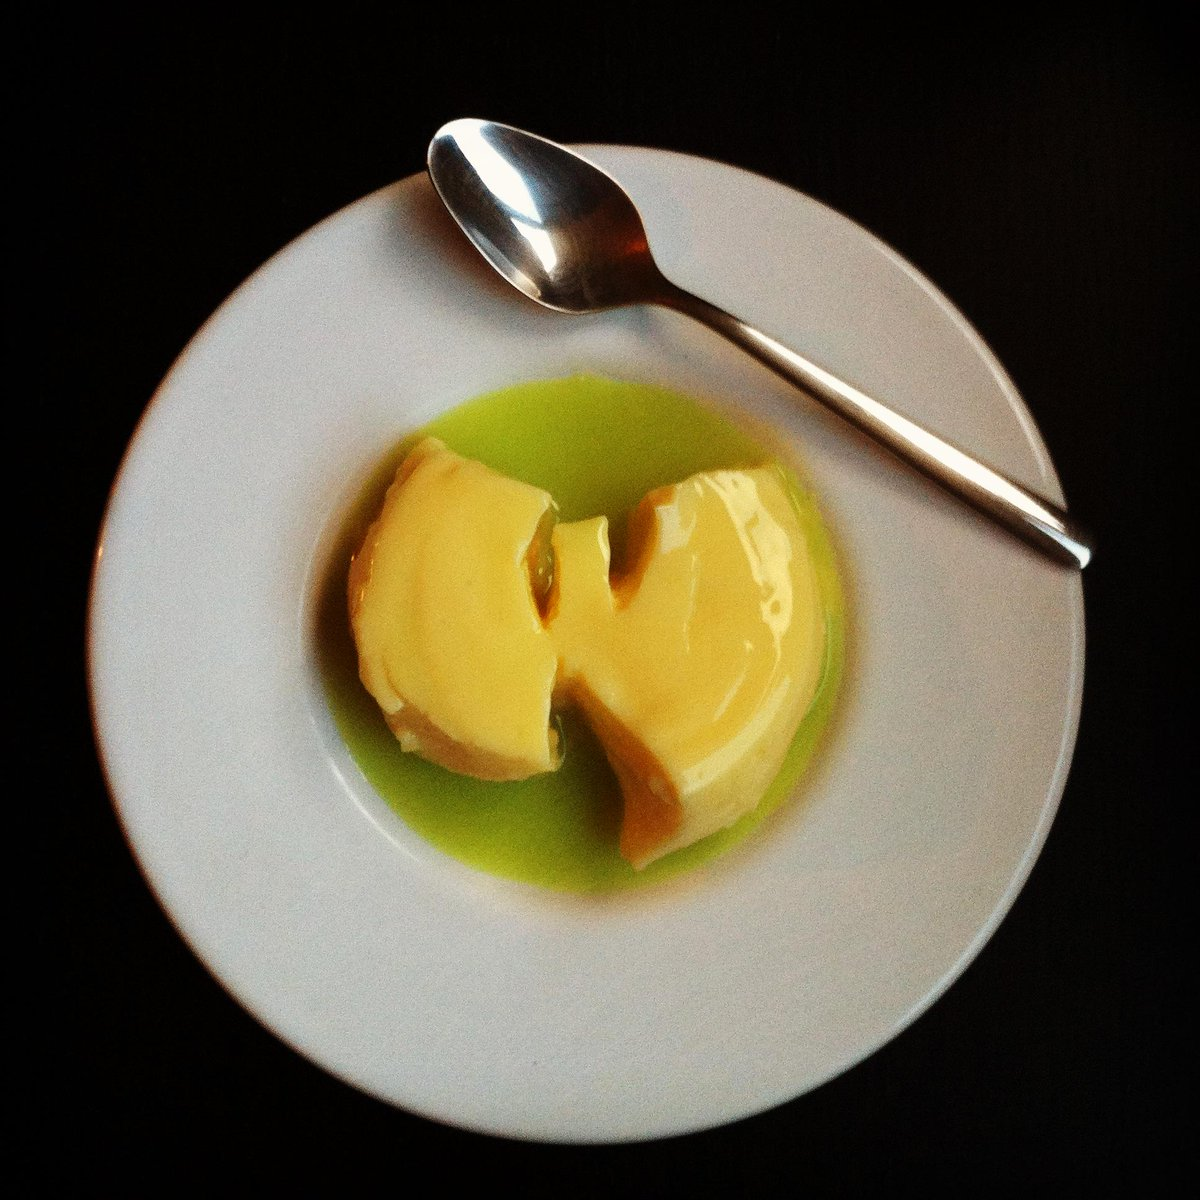 wutang flan ain't nuthin' to fluck with!  via@puls_br    http://t.co/3DIEeVnIkt